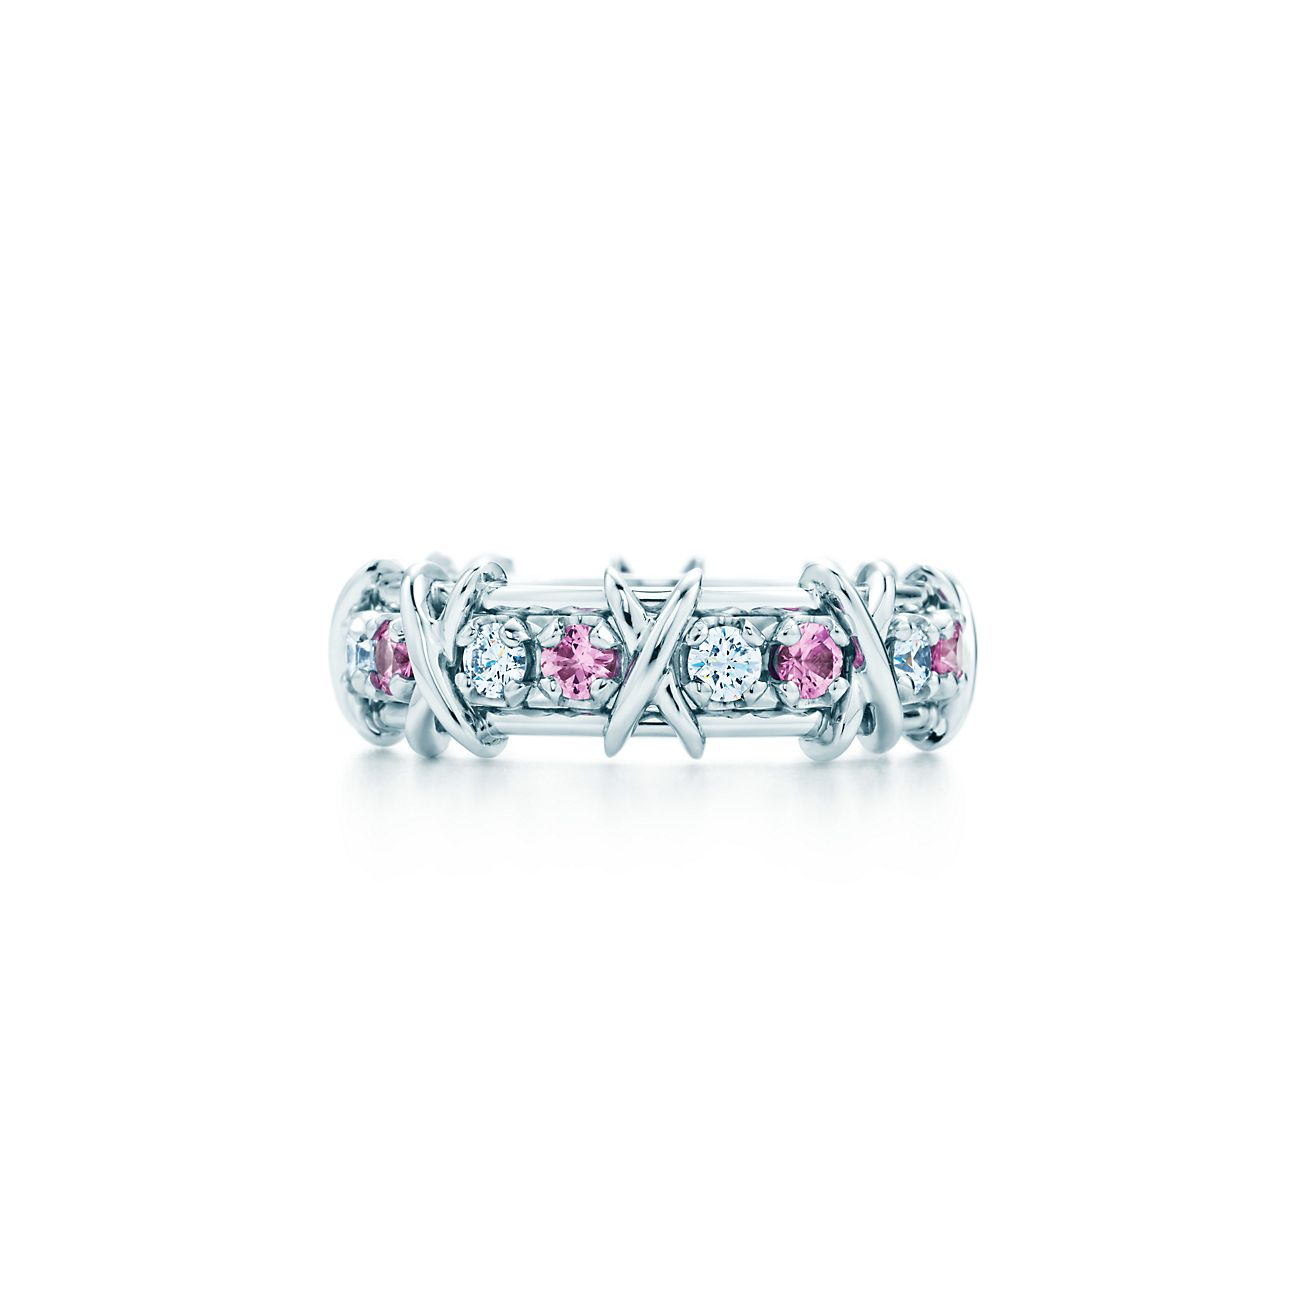 5a9b9ad227ac Tiffany   Co. Schlumberger Sixteen Stone ring with diamonds and pink ...